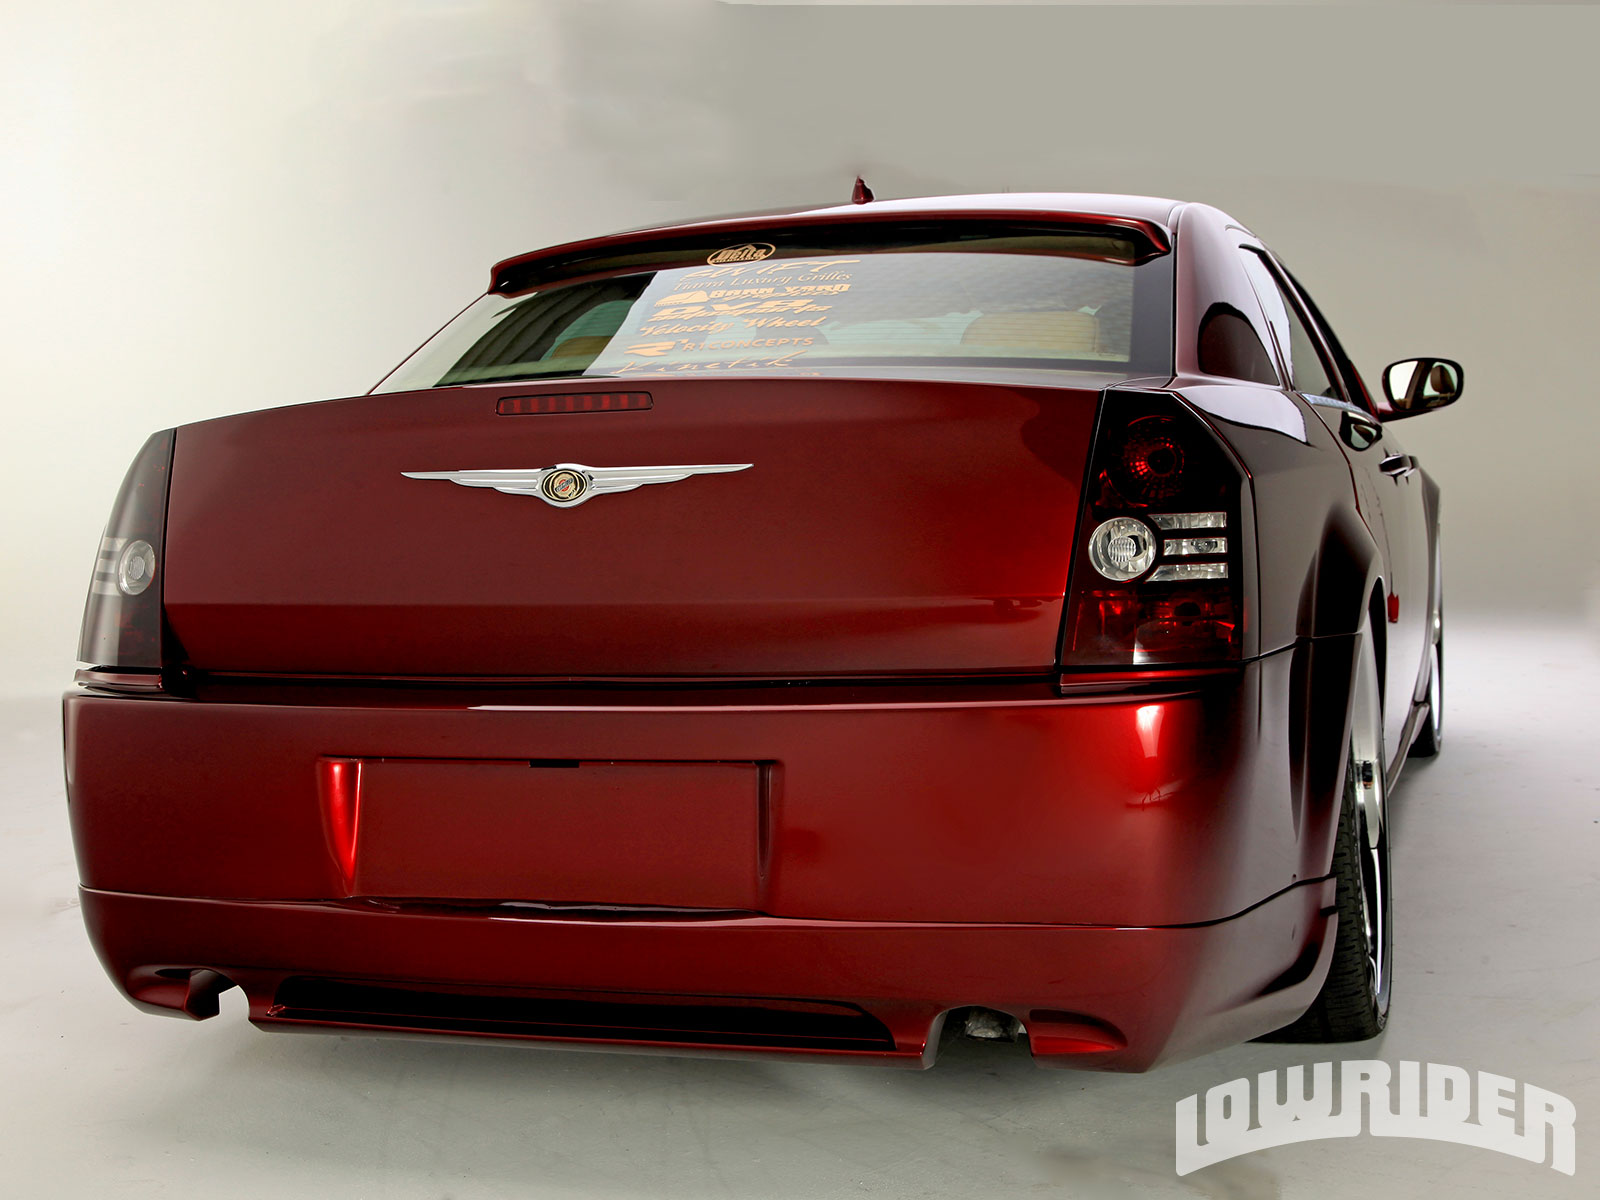 1302 Lrmp 03 O 2008 Chrysler 300 House Of Kolors Kandy Apple Red